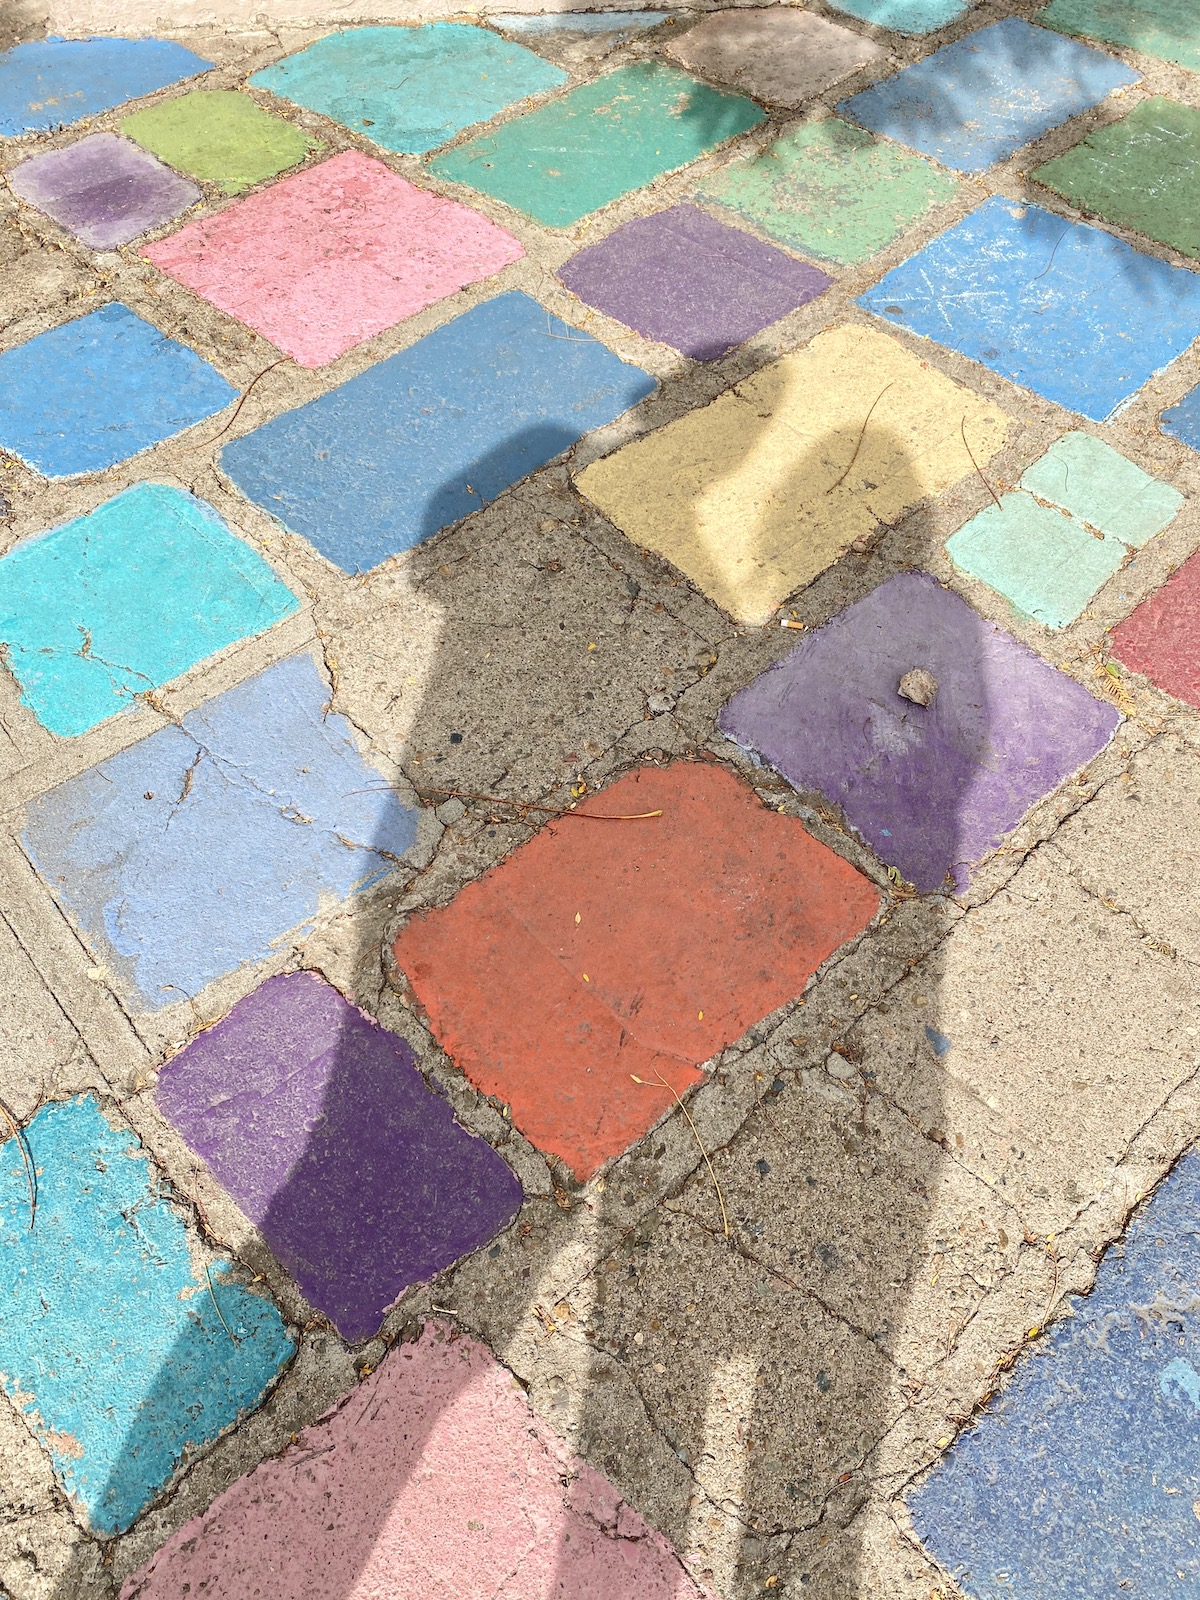 Shadows of the photographer displayed on a multi-colored cement tile floor